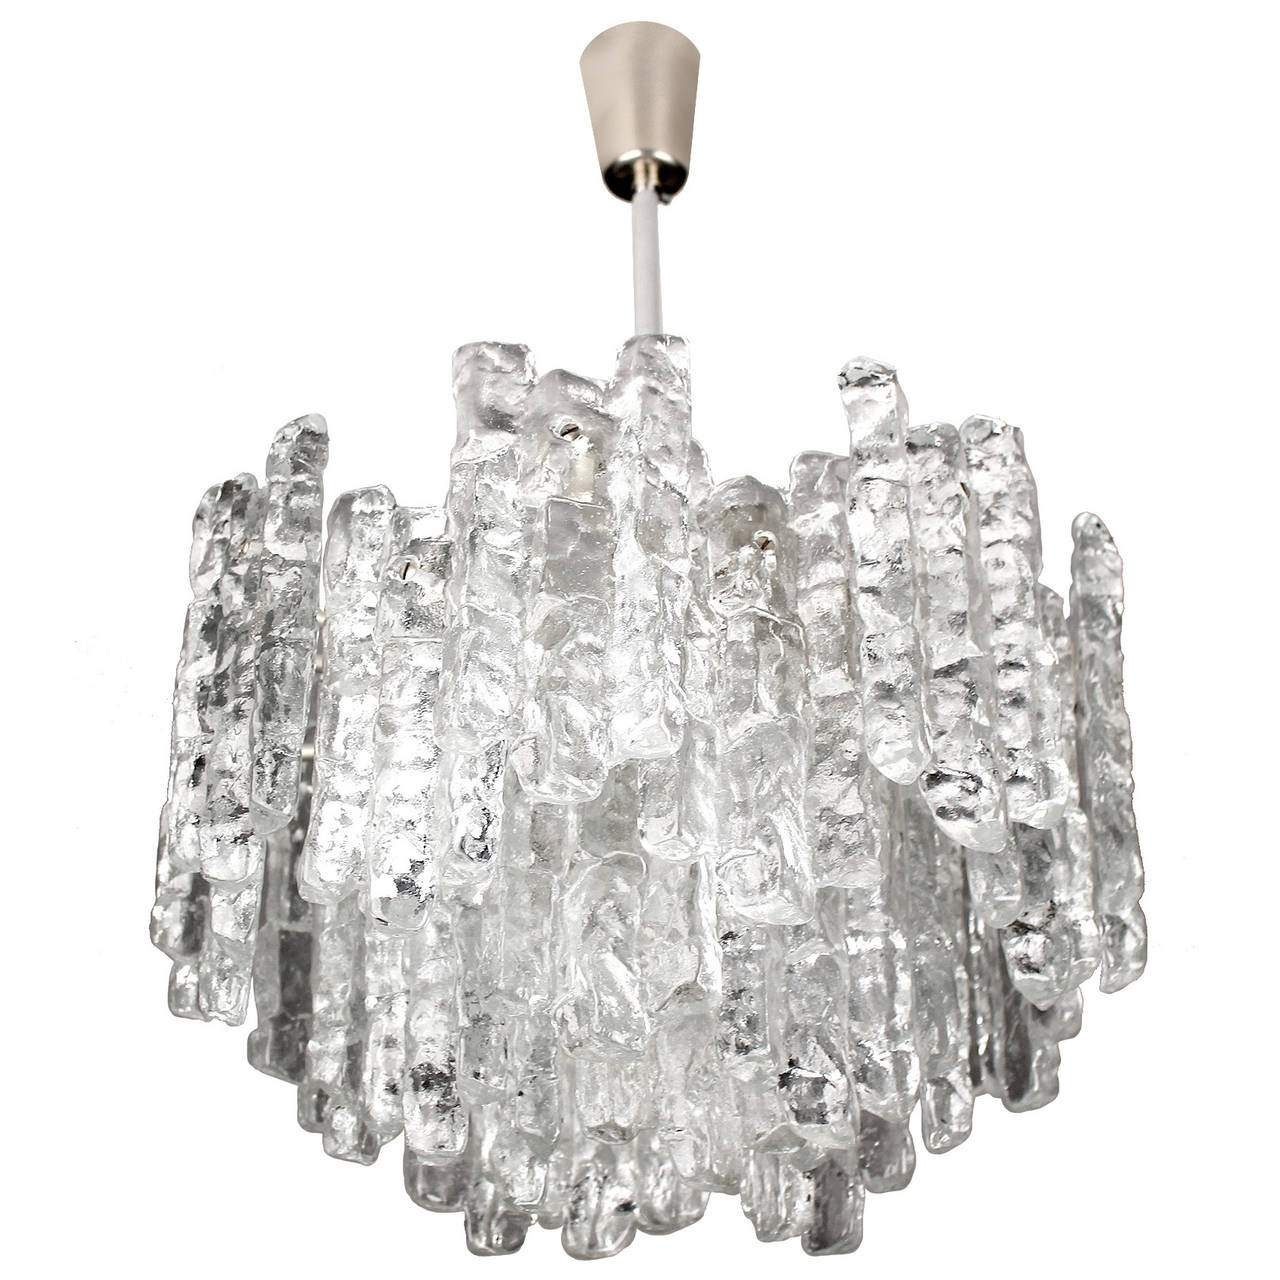 Large Kalmar Murano Glass Chandelier 1960s Modernist Design Throughout Large Glass Chandelier (View 5 of 15)